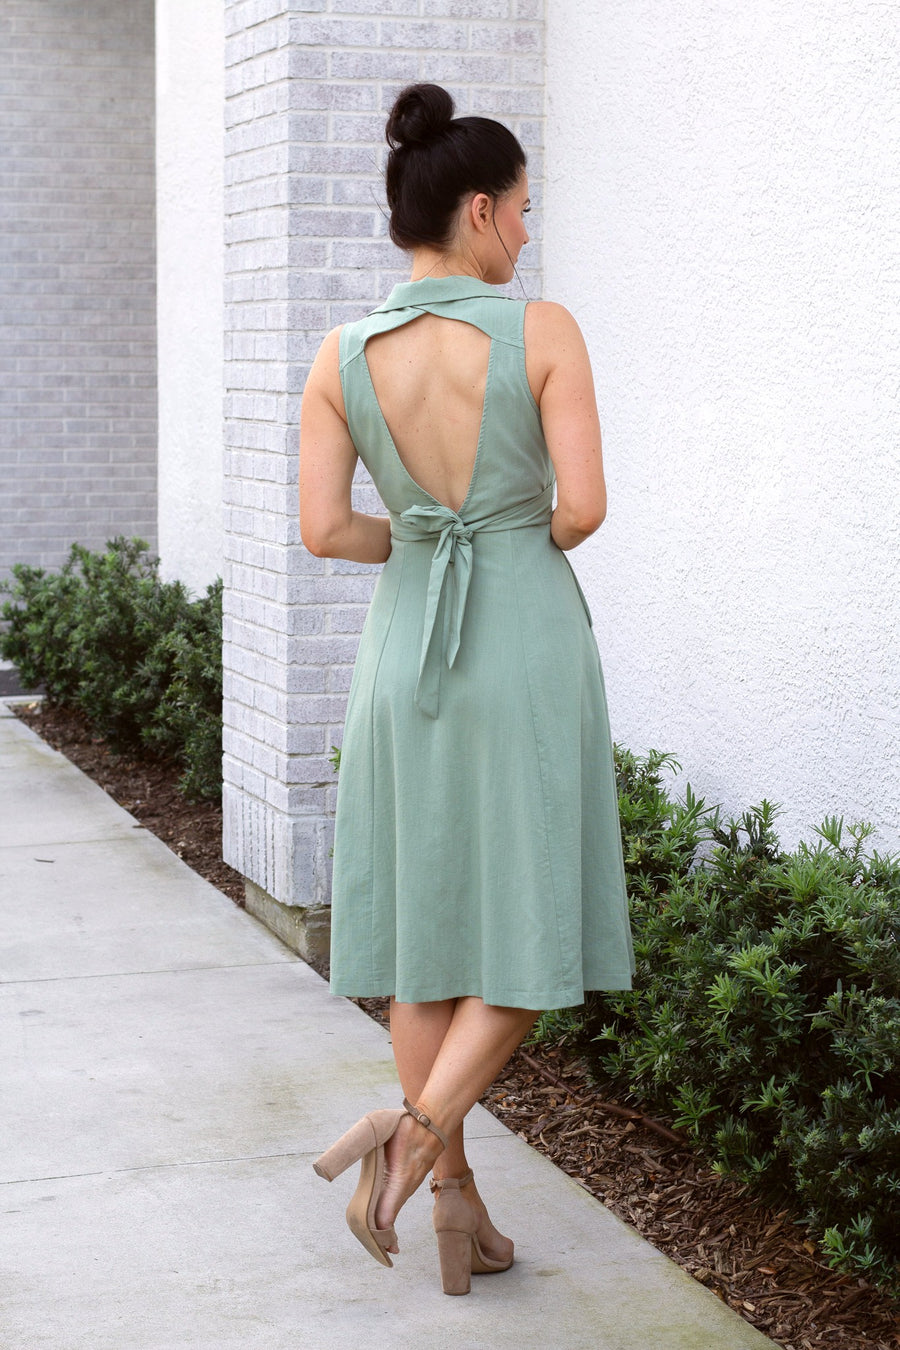 Sage midi dress has a sleeveless, notched collar neckline with an empire bodice, button-down silhouette with a fit and flare skirt accented with a tie feature.